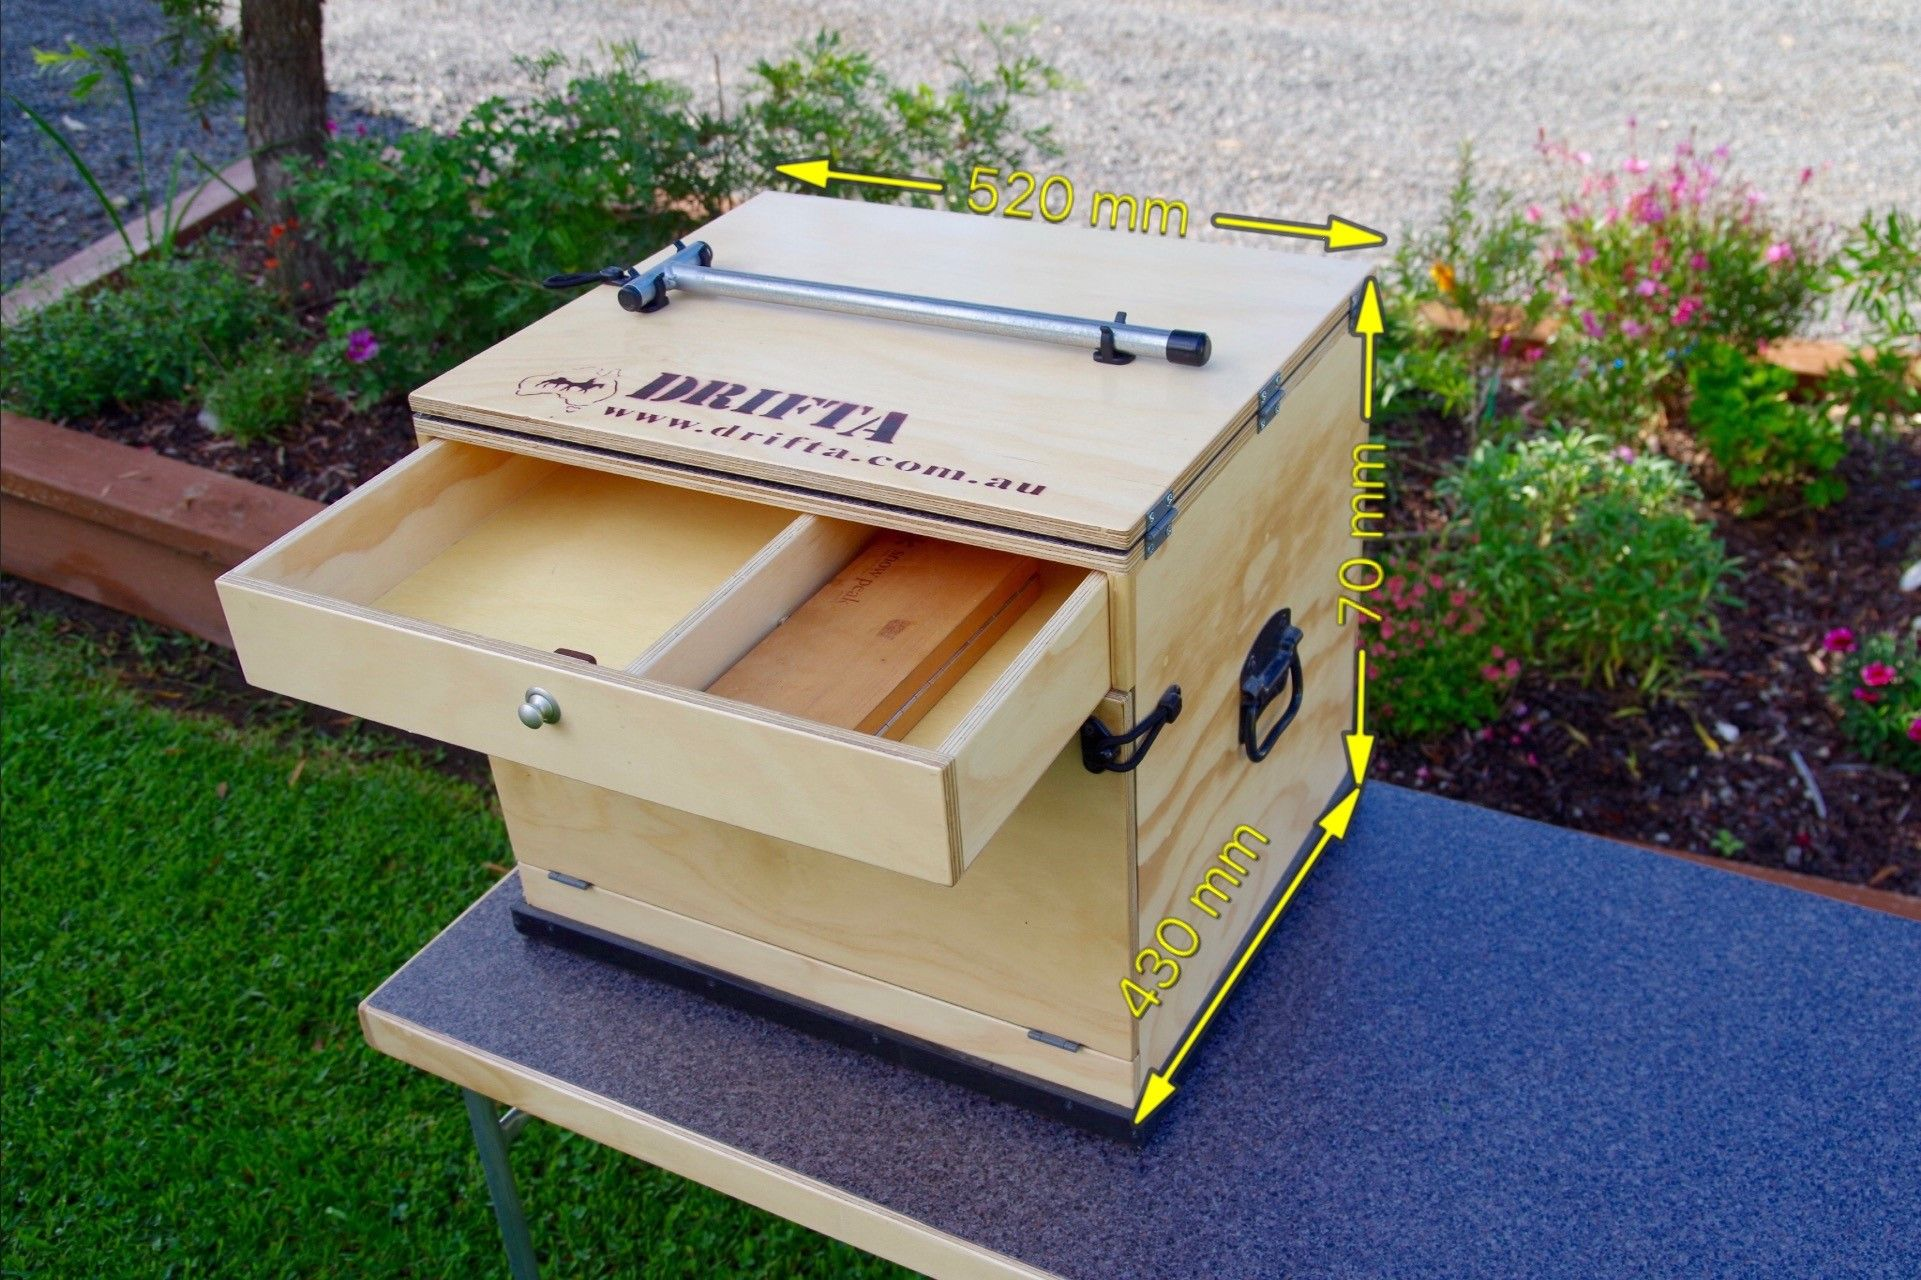 Small Travel Kitchen With Lid Drifta Camping 4wd 520 Mm Wide 470 Mm High 430 Mm Deep 13 Kgs 335 Australisch Camping Chuck Box Diy Camping Camping Box